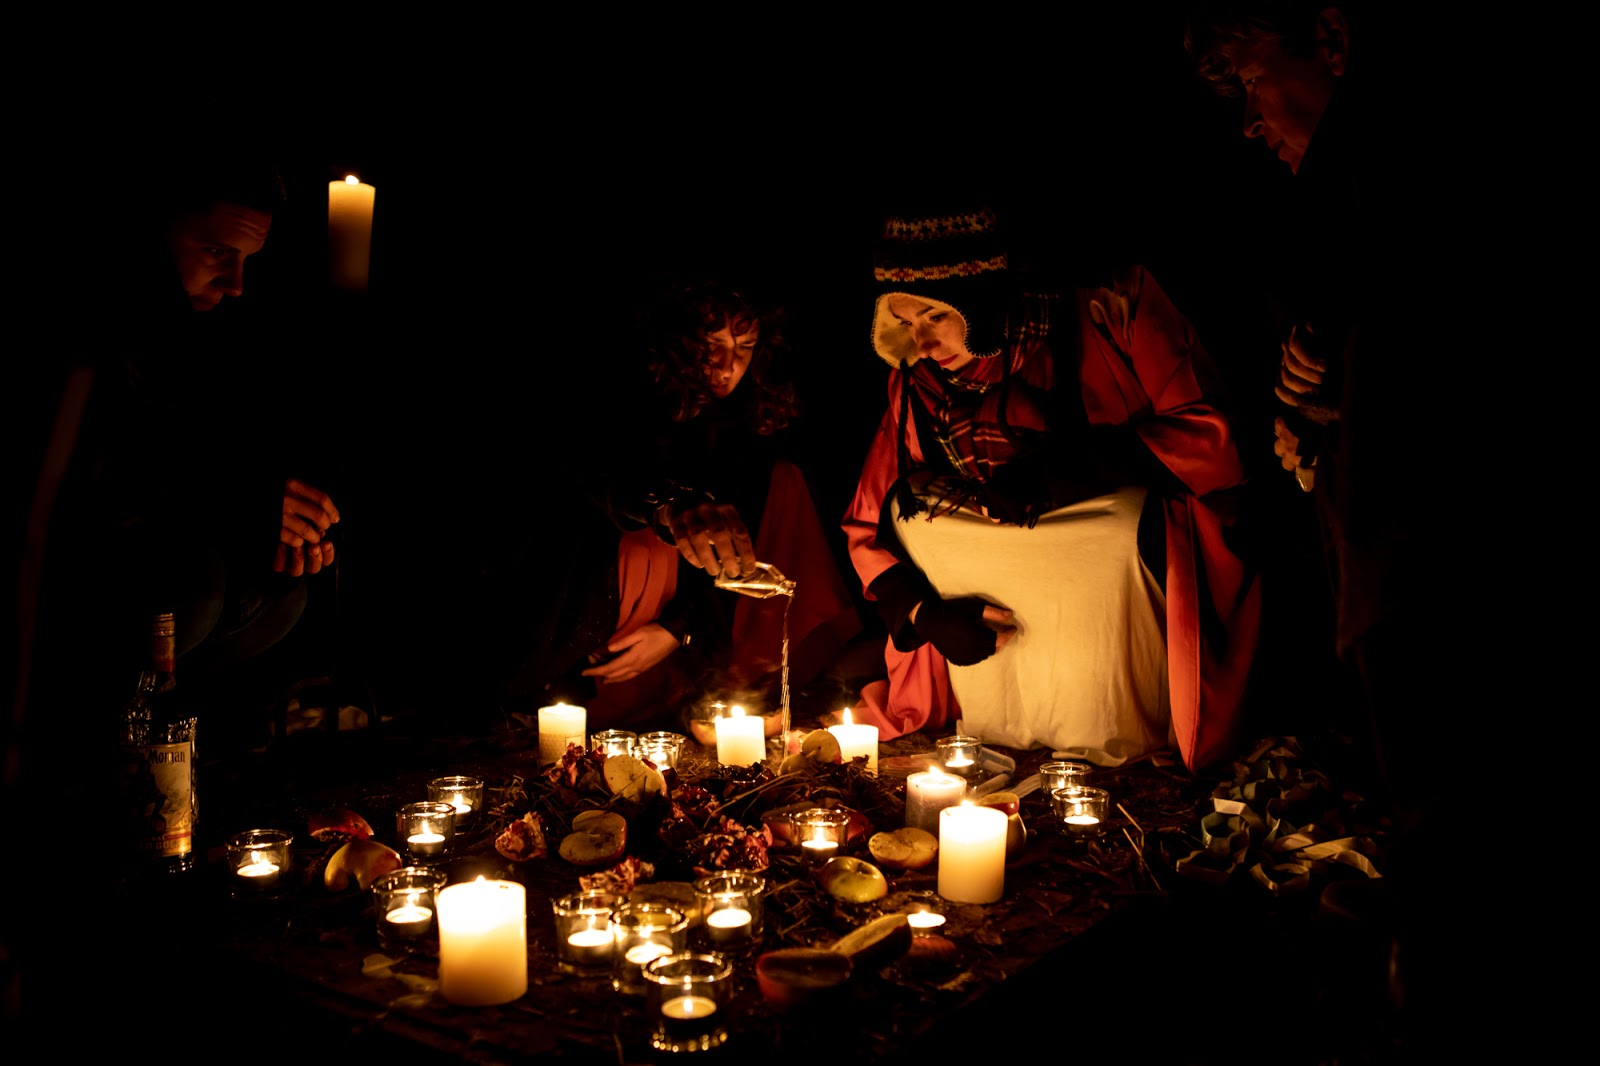 Previous Thesmophoria event. Group gathered in darkness around an assortment of candles.